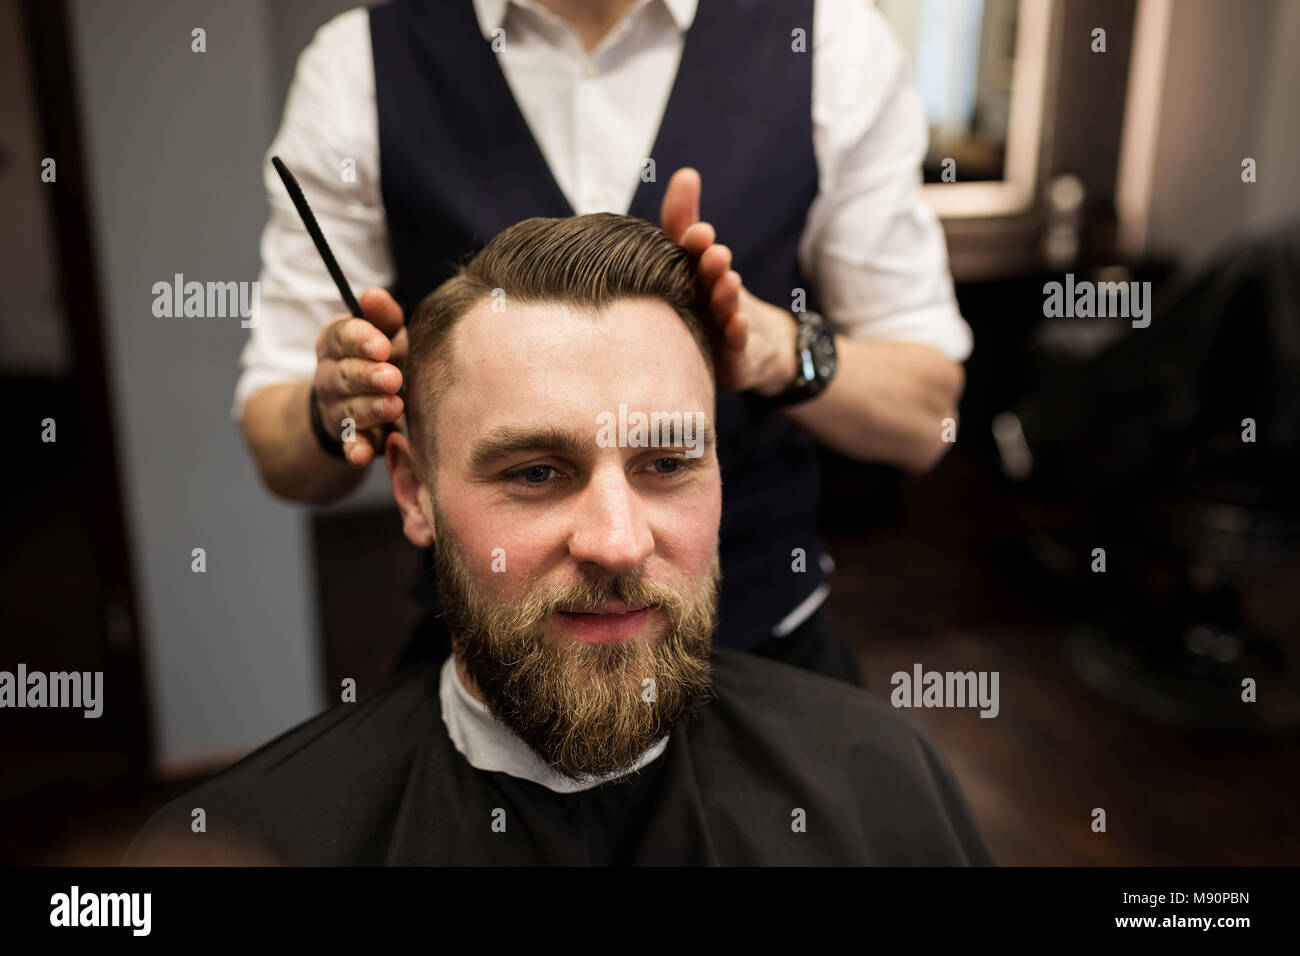 Portrait of happy man having hair cut at barber salon - Stock Image